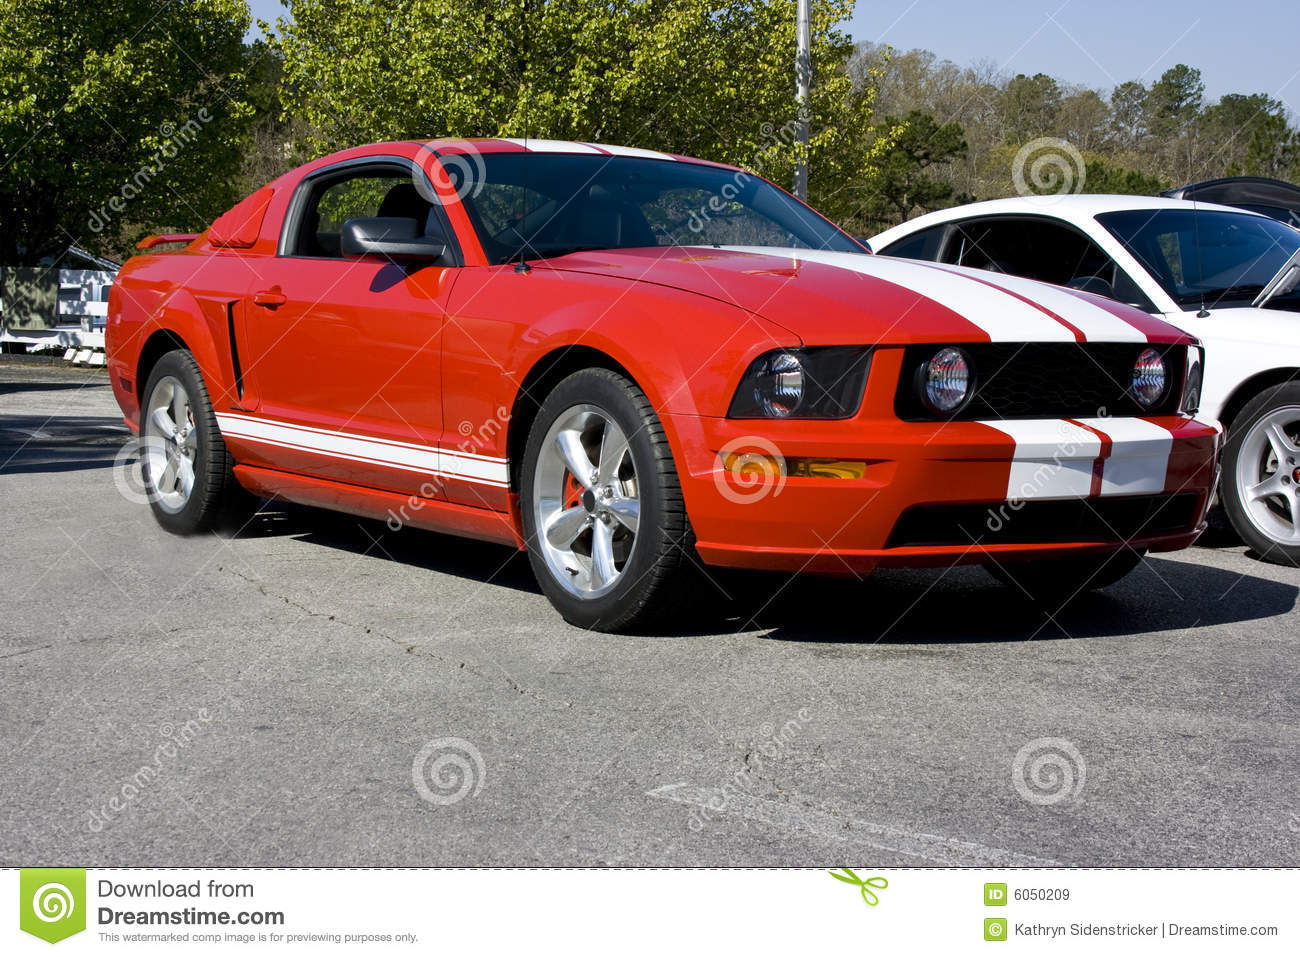 2008 Ford Mustang Gt Red Stock Image Image Of Auto